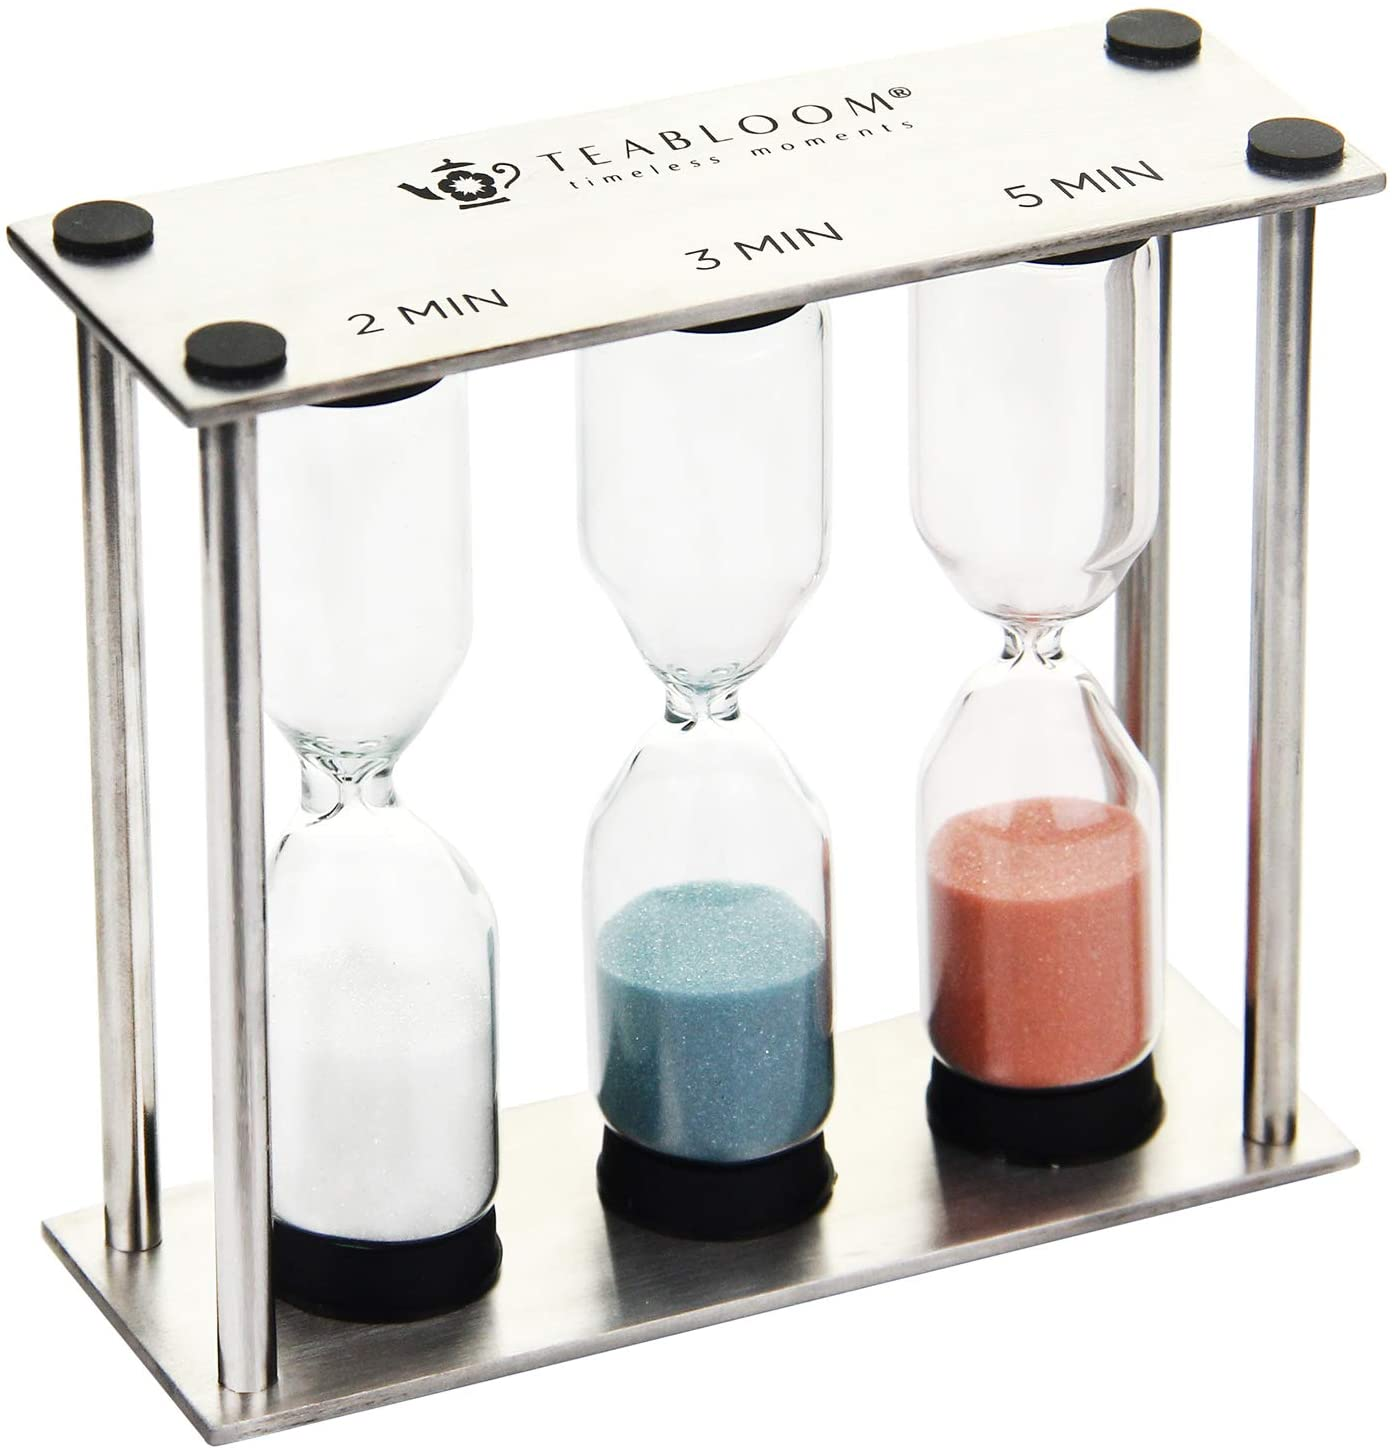 Teabloom Trio Tea Timer in Brushed Stainless Steel: Home & Kitchen